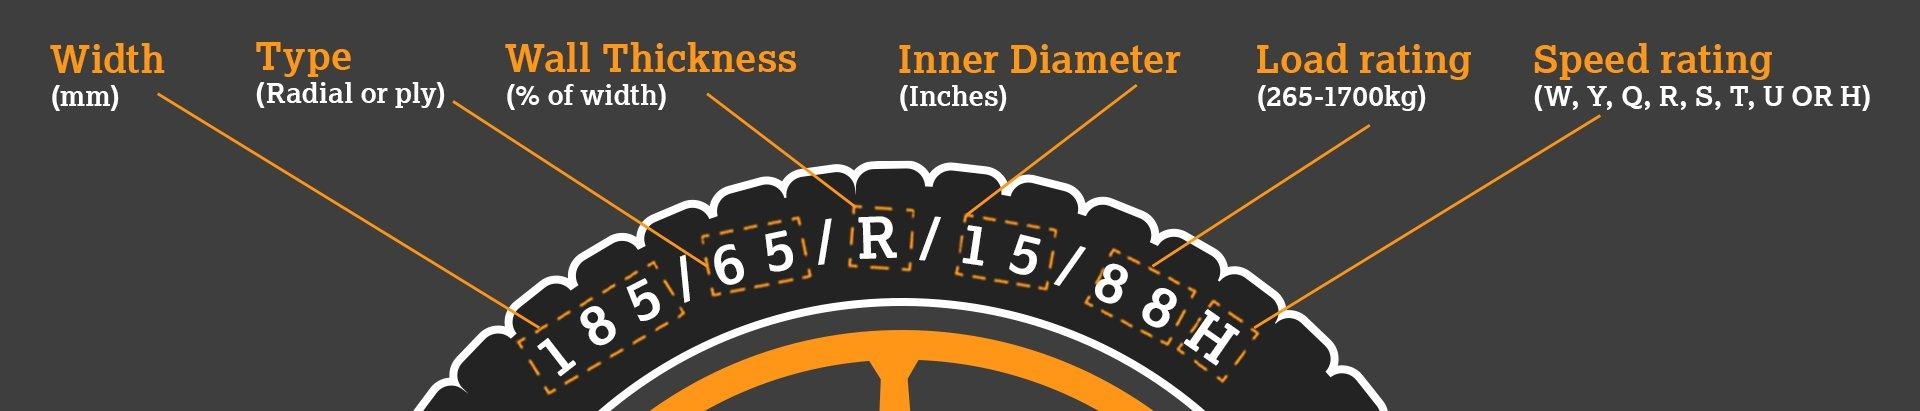 Understanding the numbers on your tyres